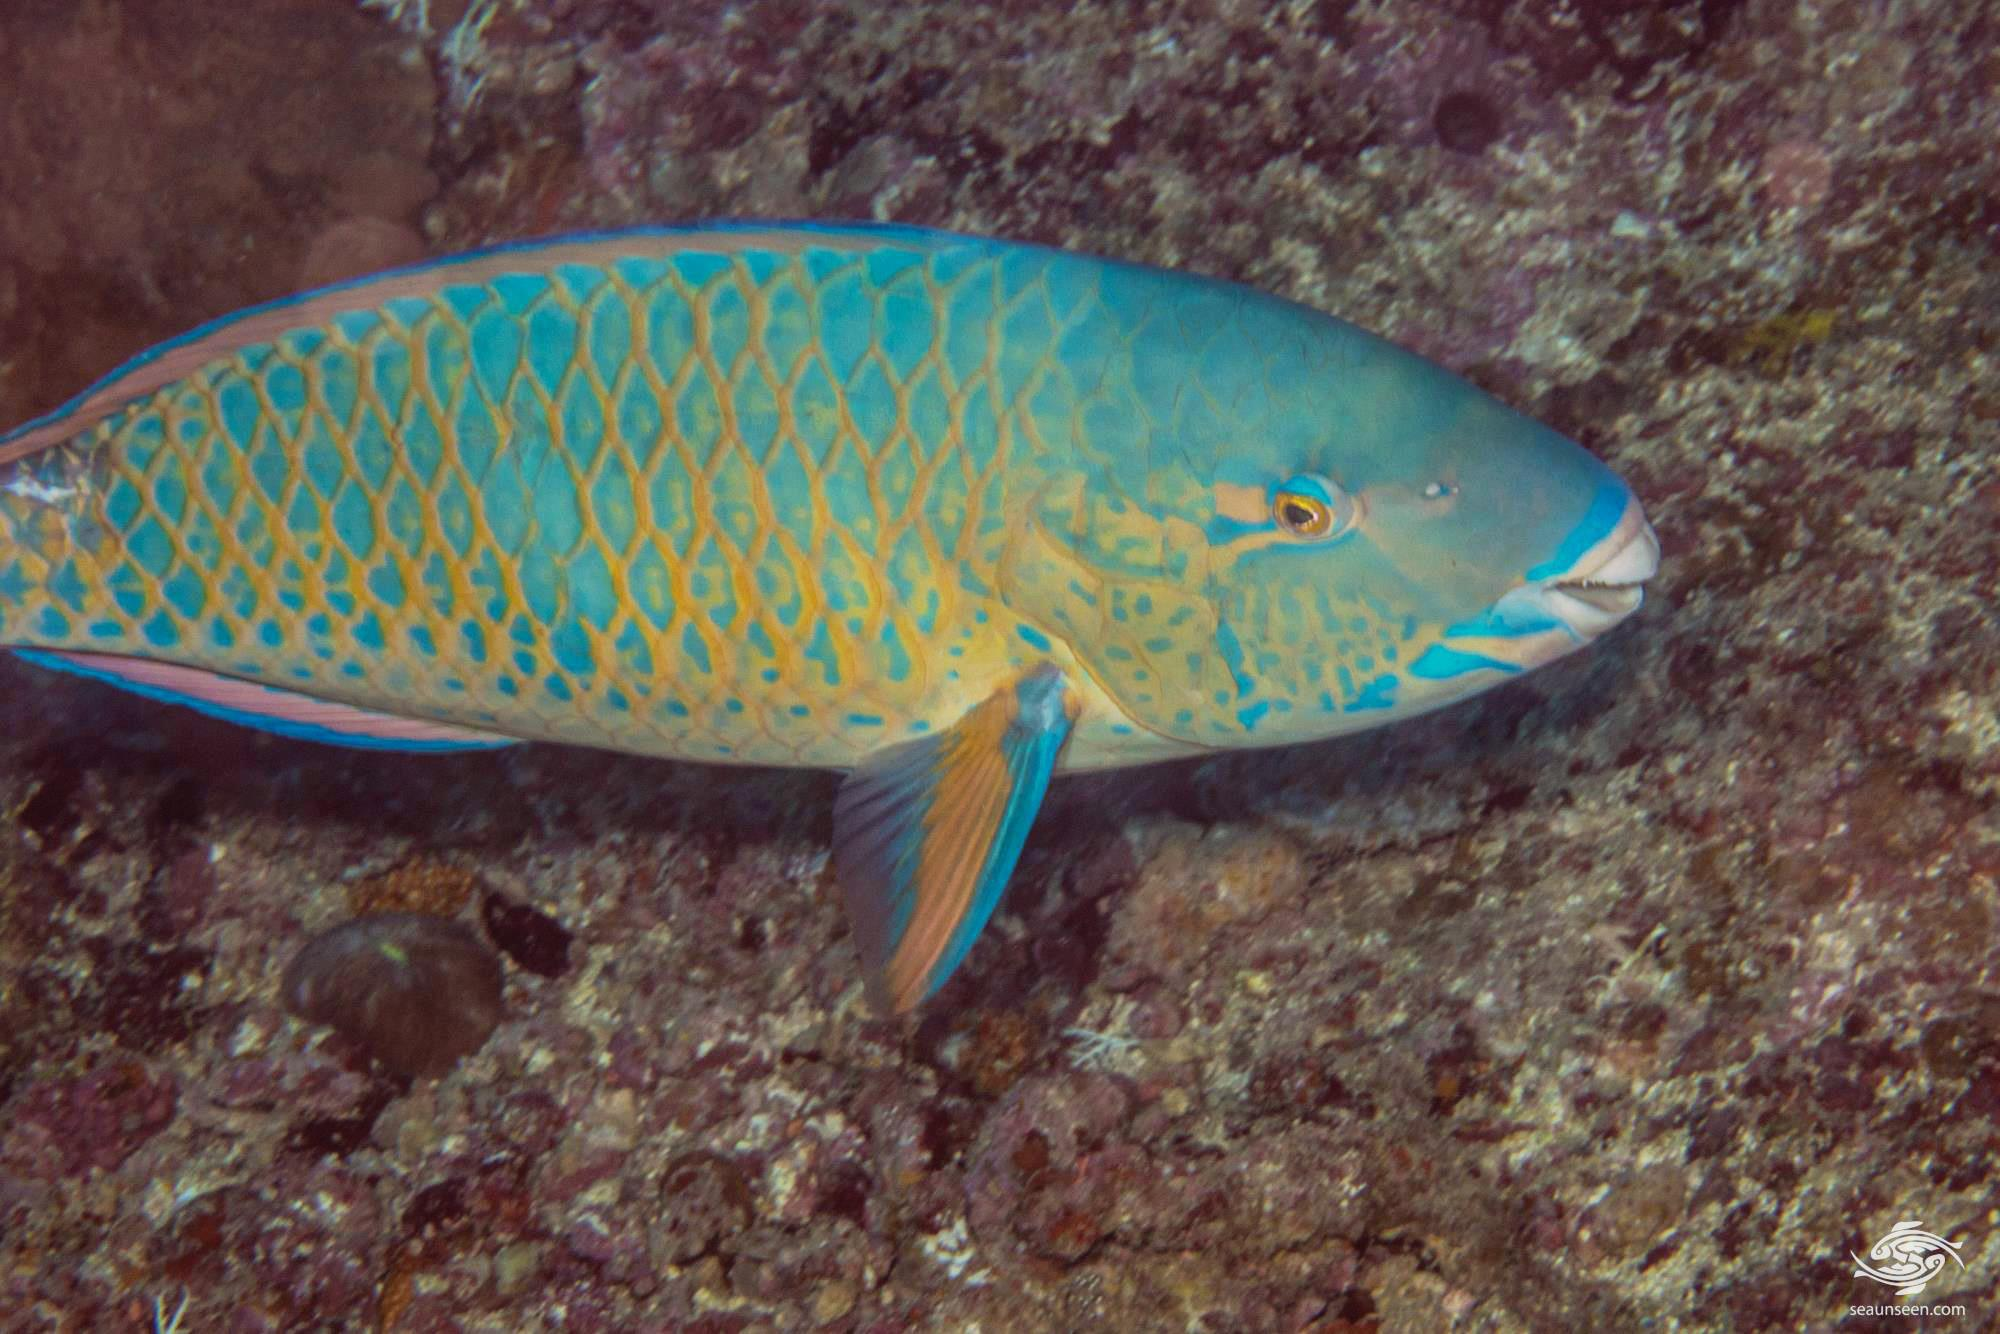 Blue-barred Parrotfish (Scarus ghobban) is also known as the Blue trim Parrotfish, Globe-headed Parrotfish, Green blotched Parrotfish and Bluechin parrotfish